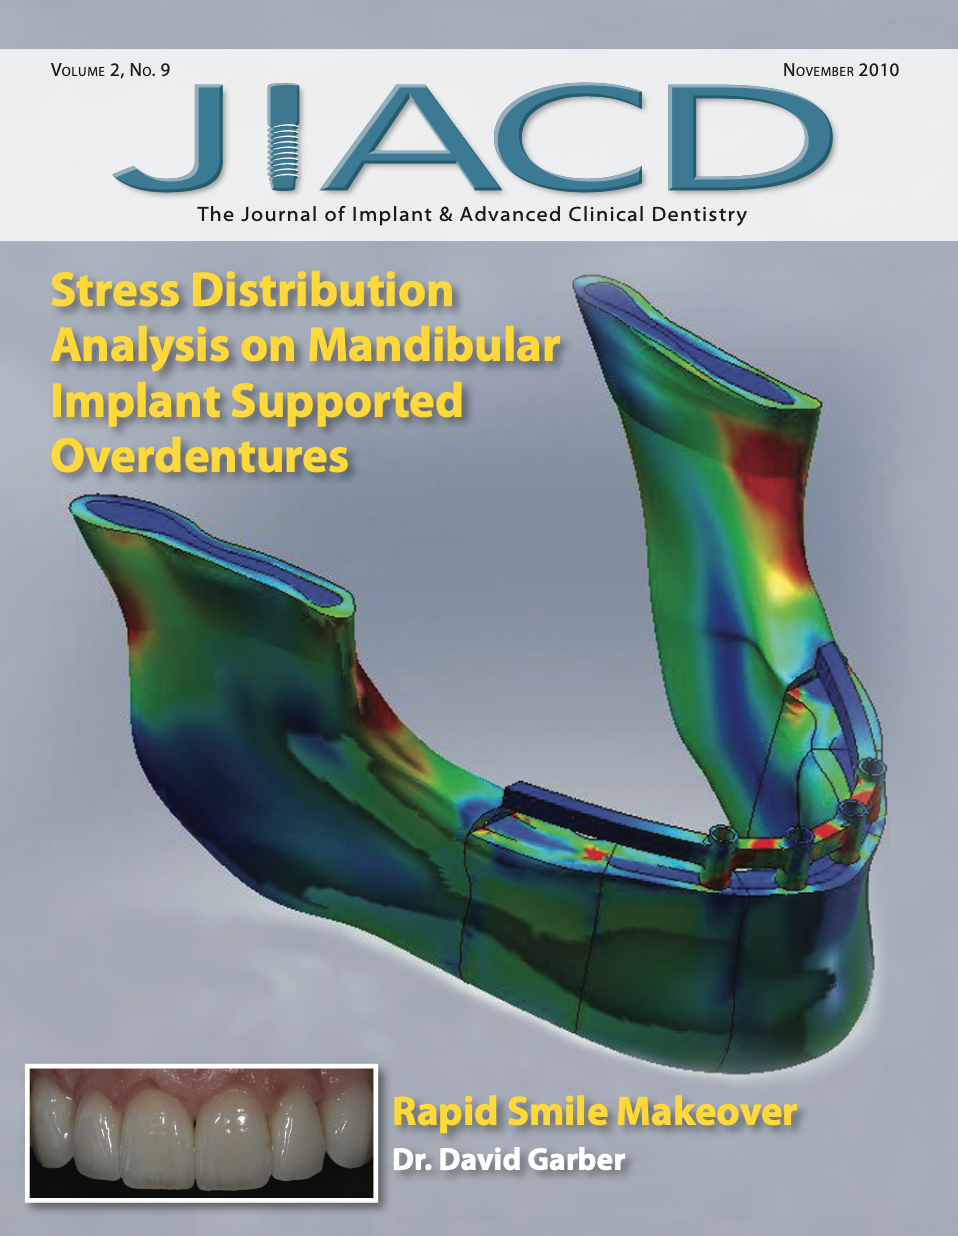 Stress Distribution Analysis on Mandibular Implant Supported Overdentures